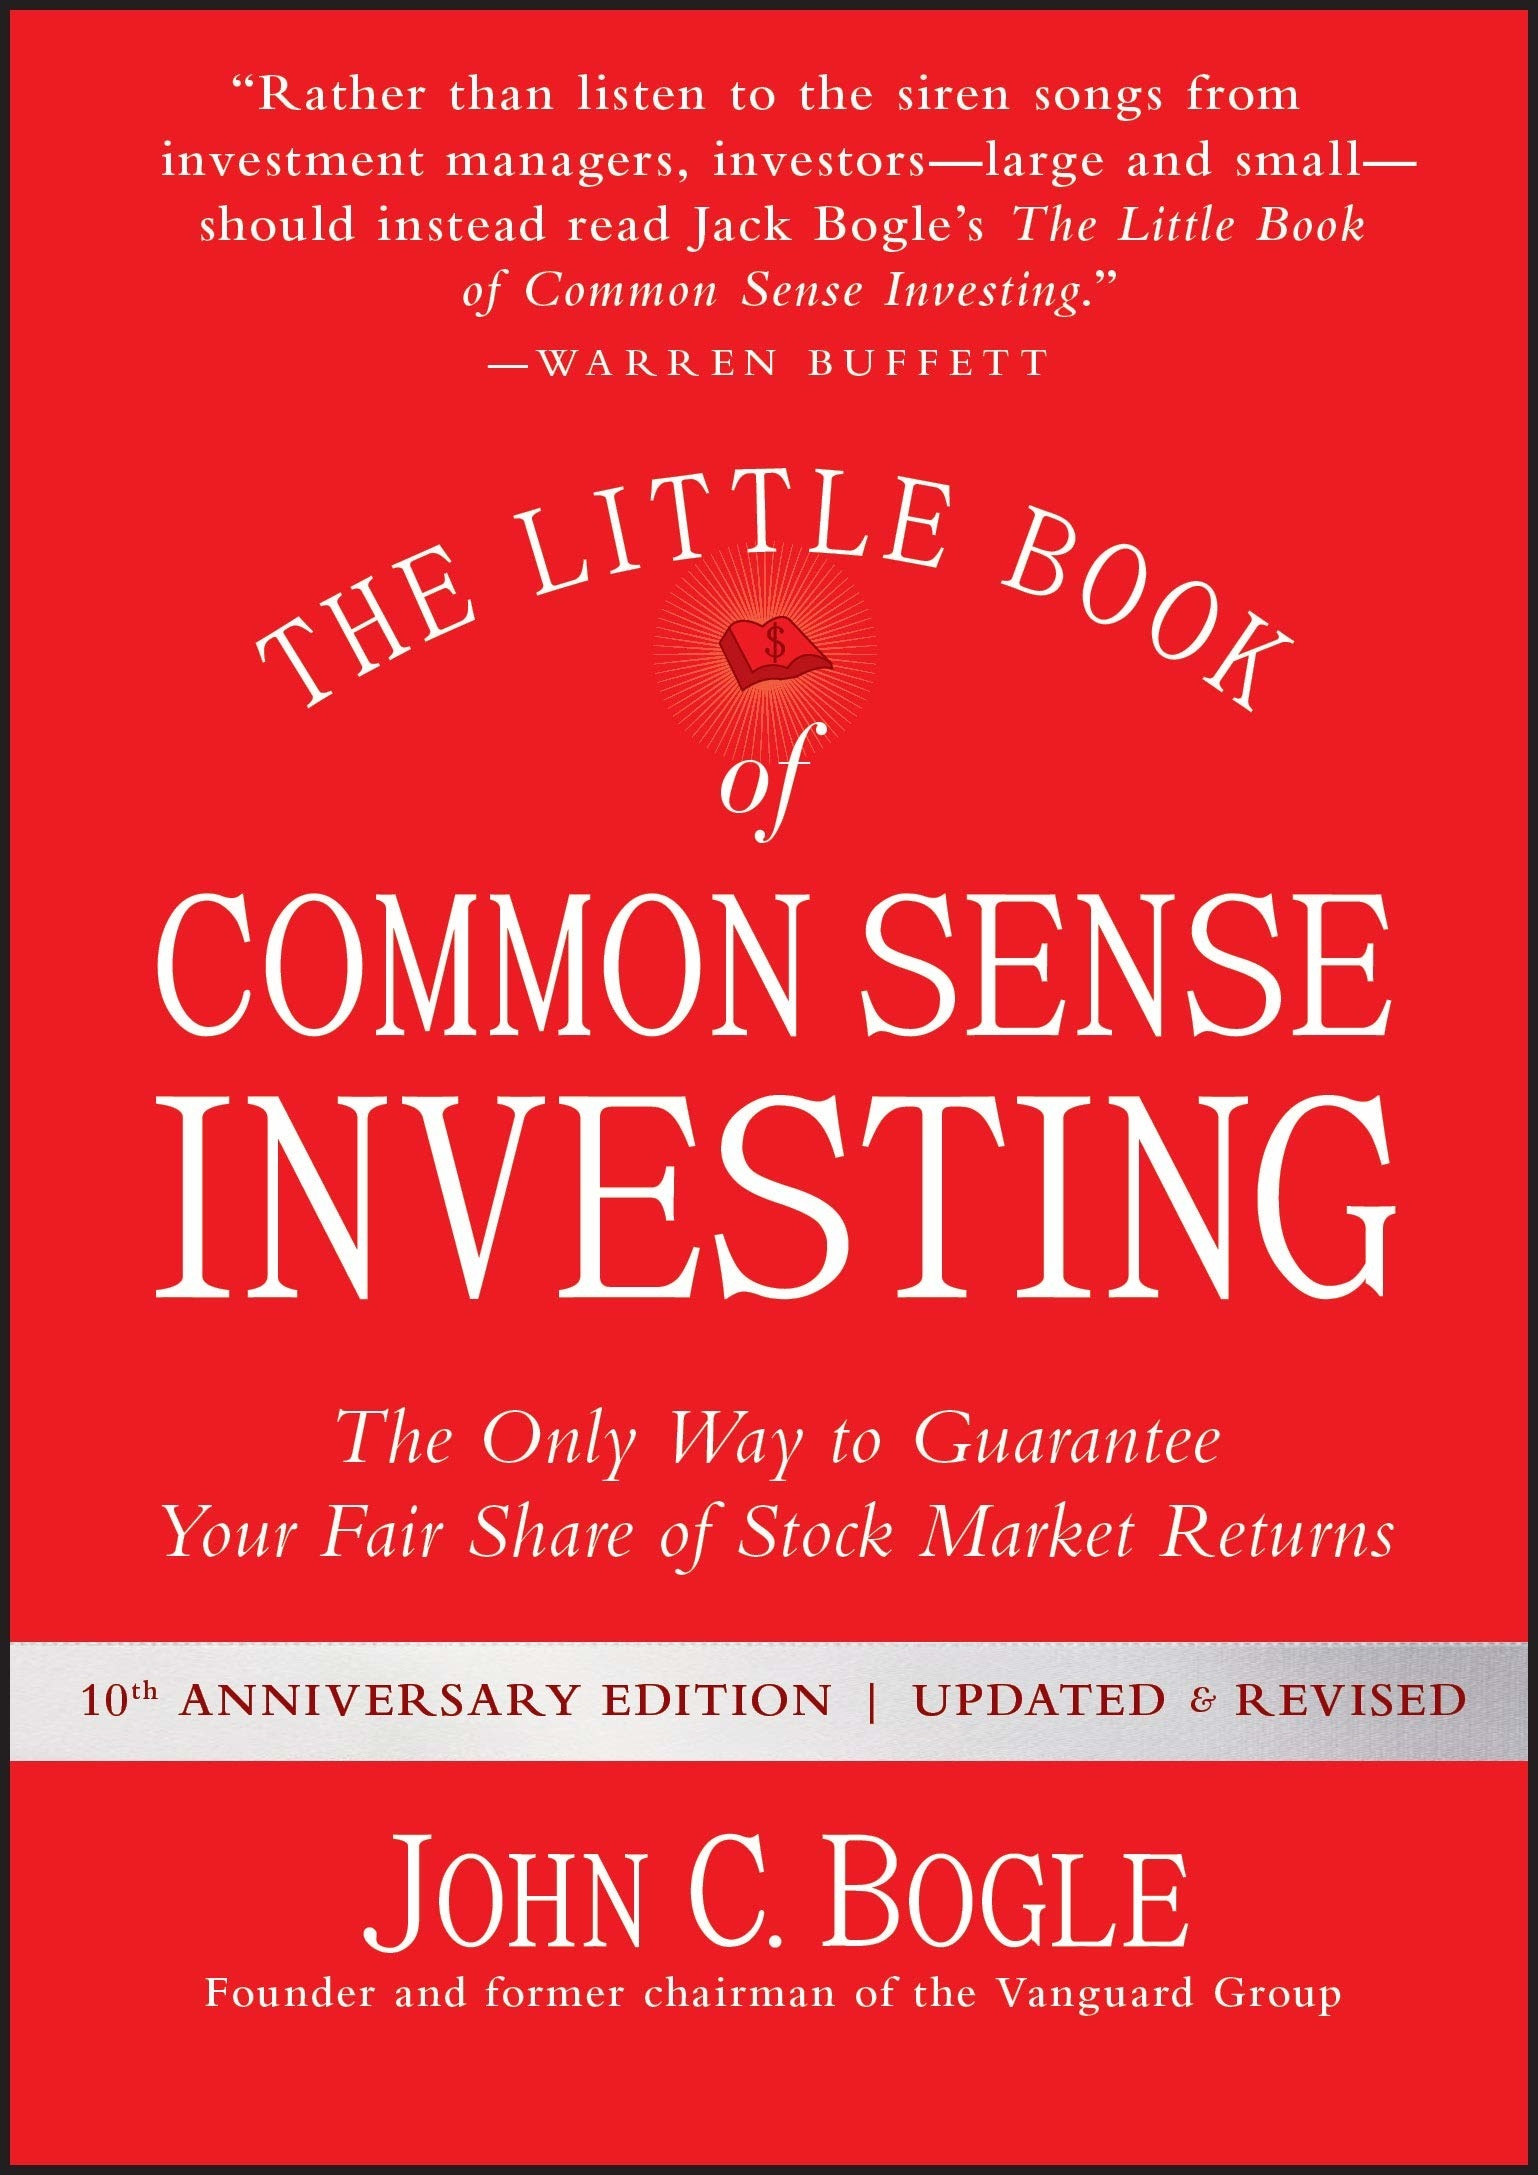 The only way to guarantee your fair share of stock market returns